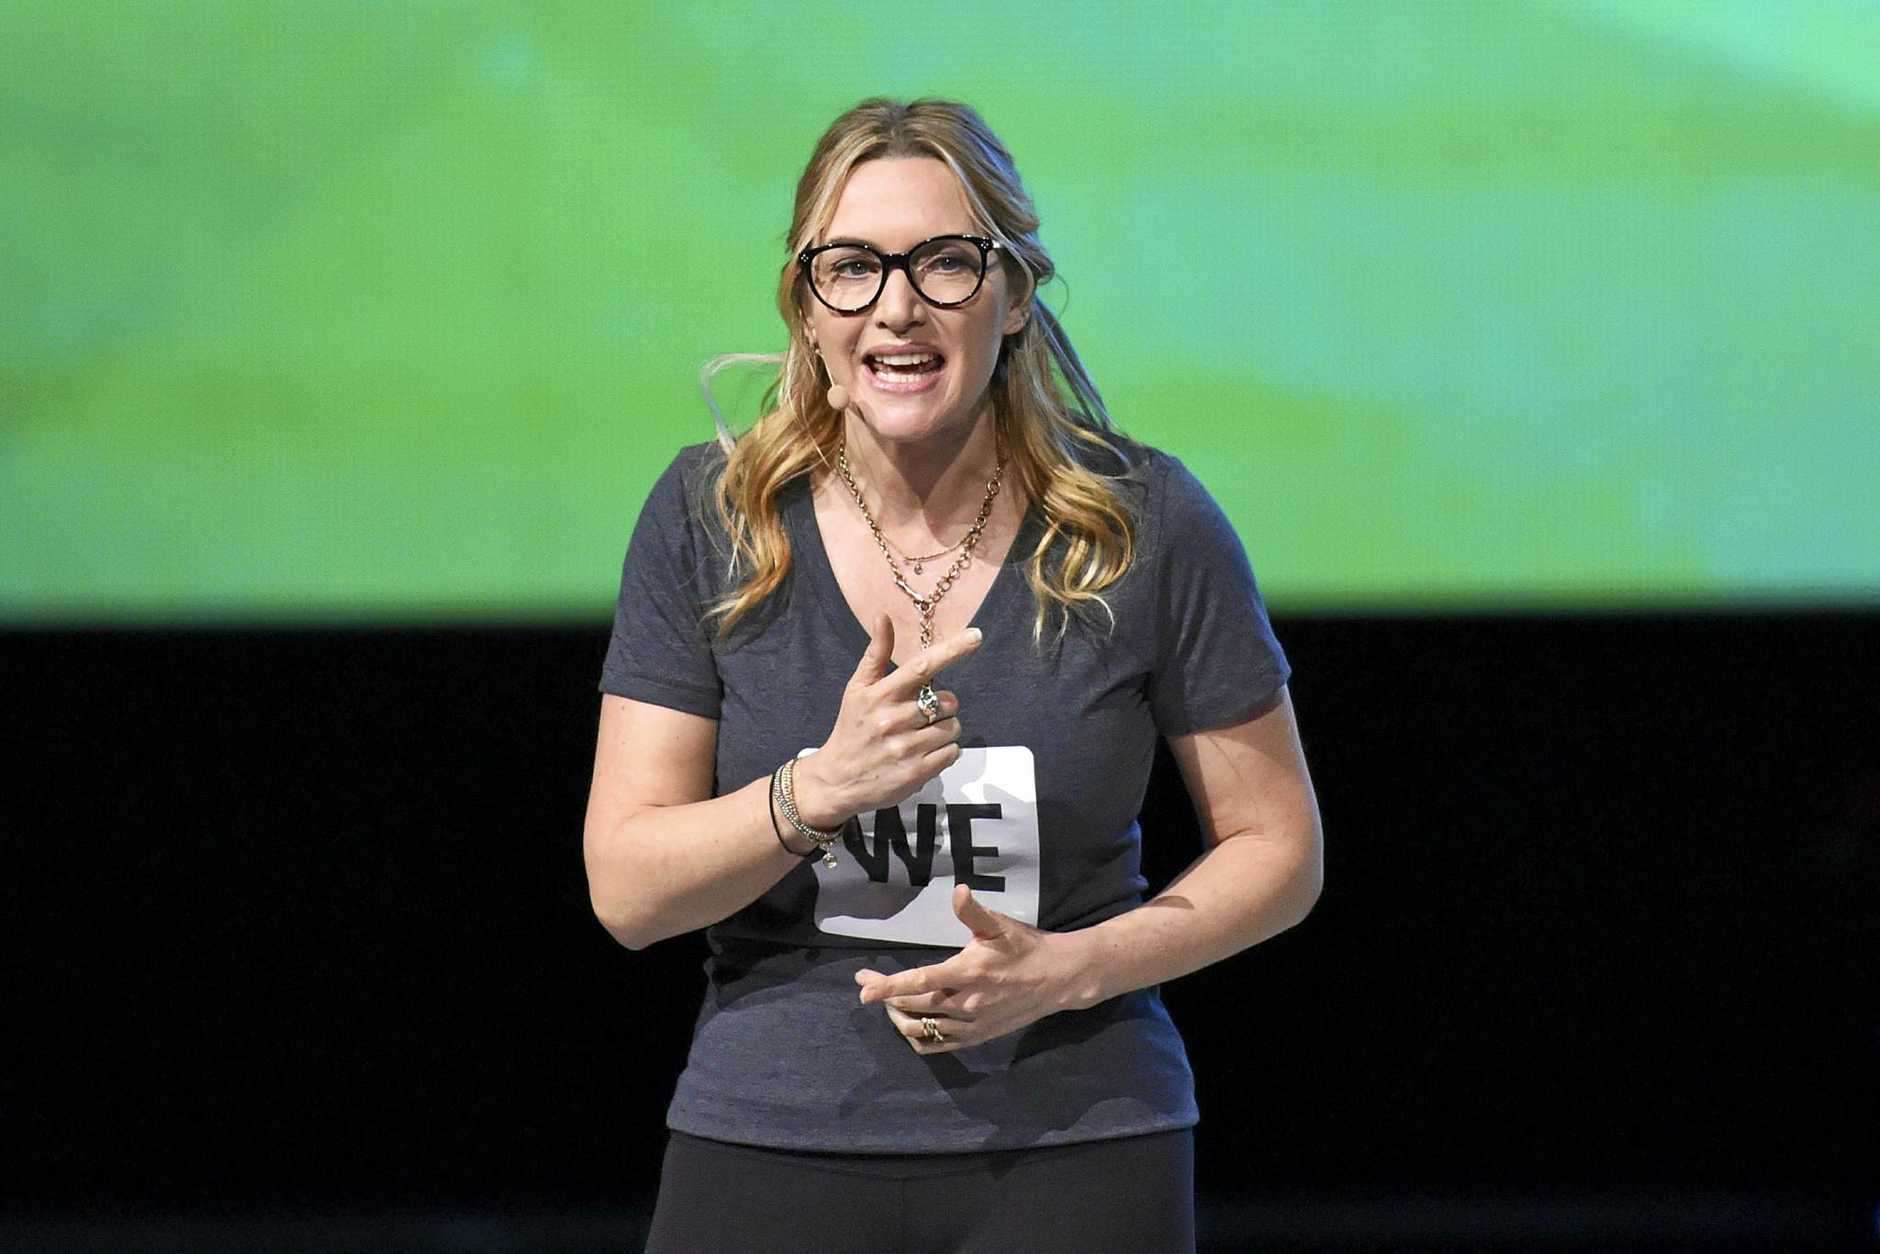 British actress Kate Winslet gestures on stage at the WE Day UK charity event and concert in London.